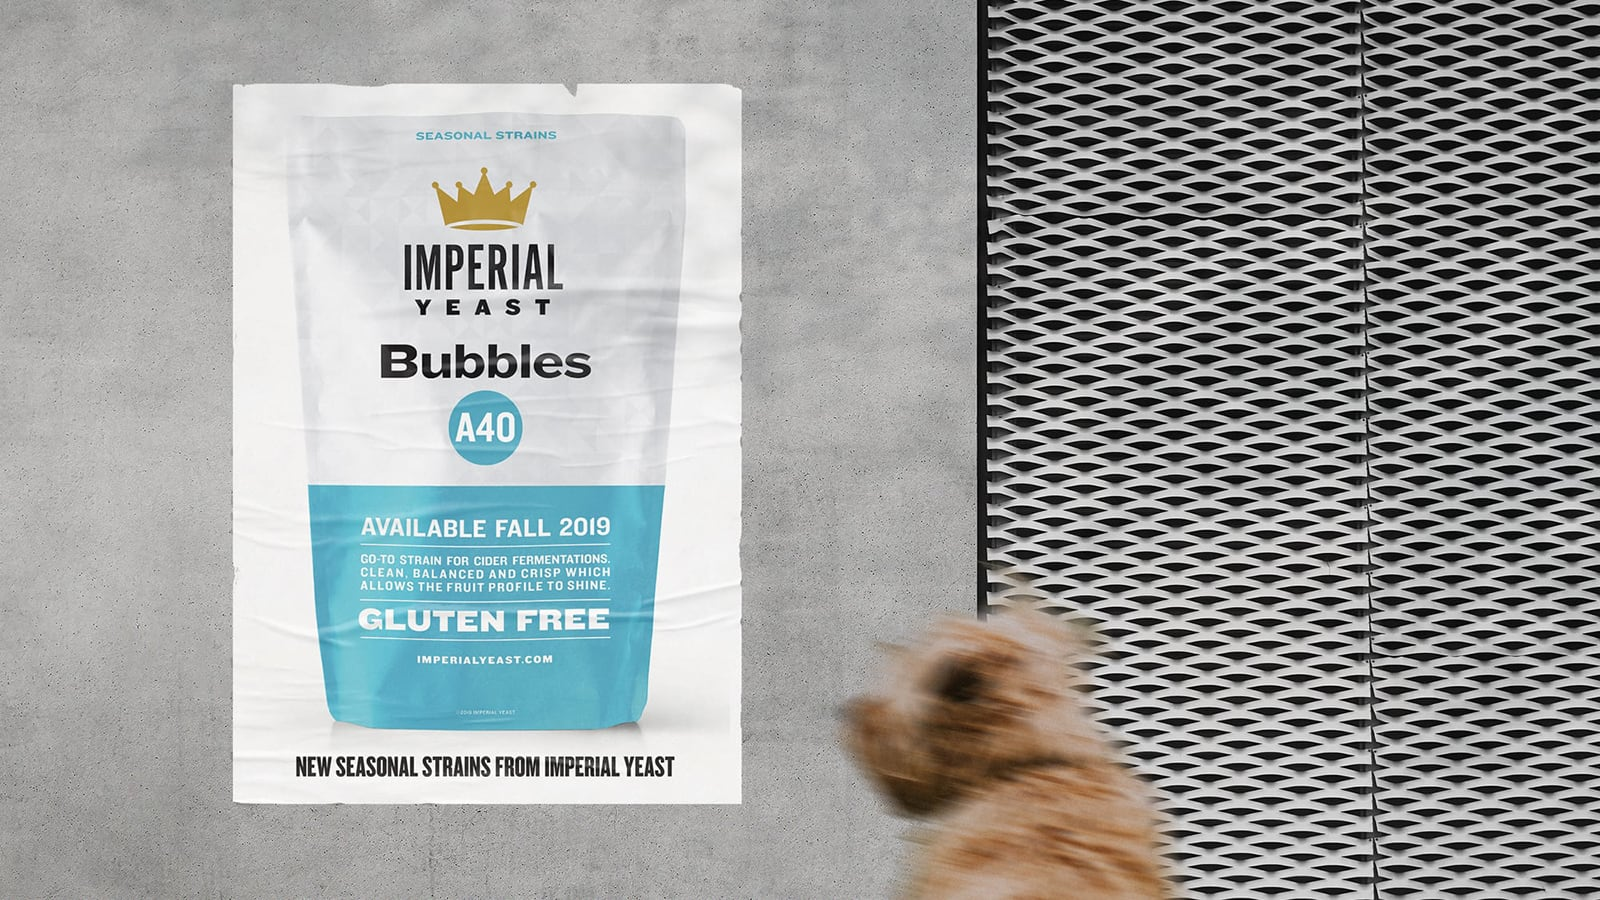 Imperial Gluten Free Yeast Bubbles Poster